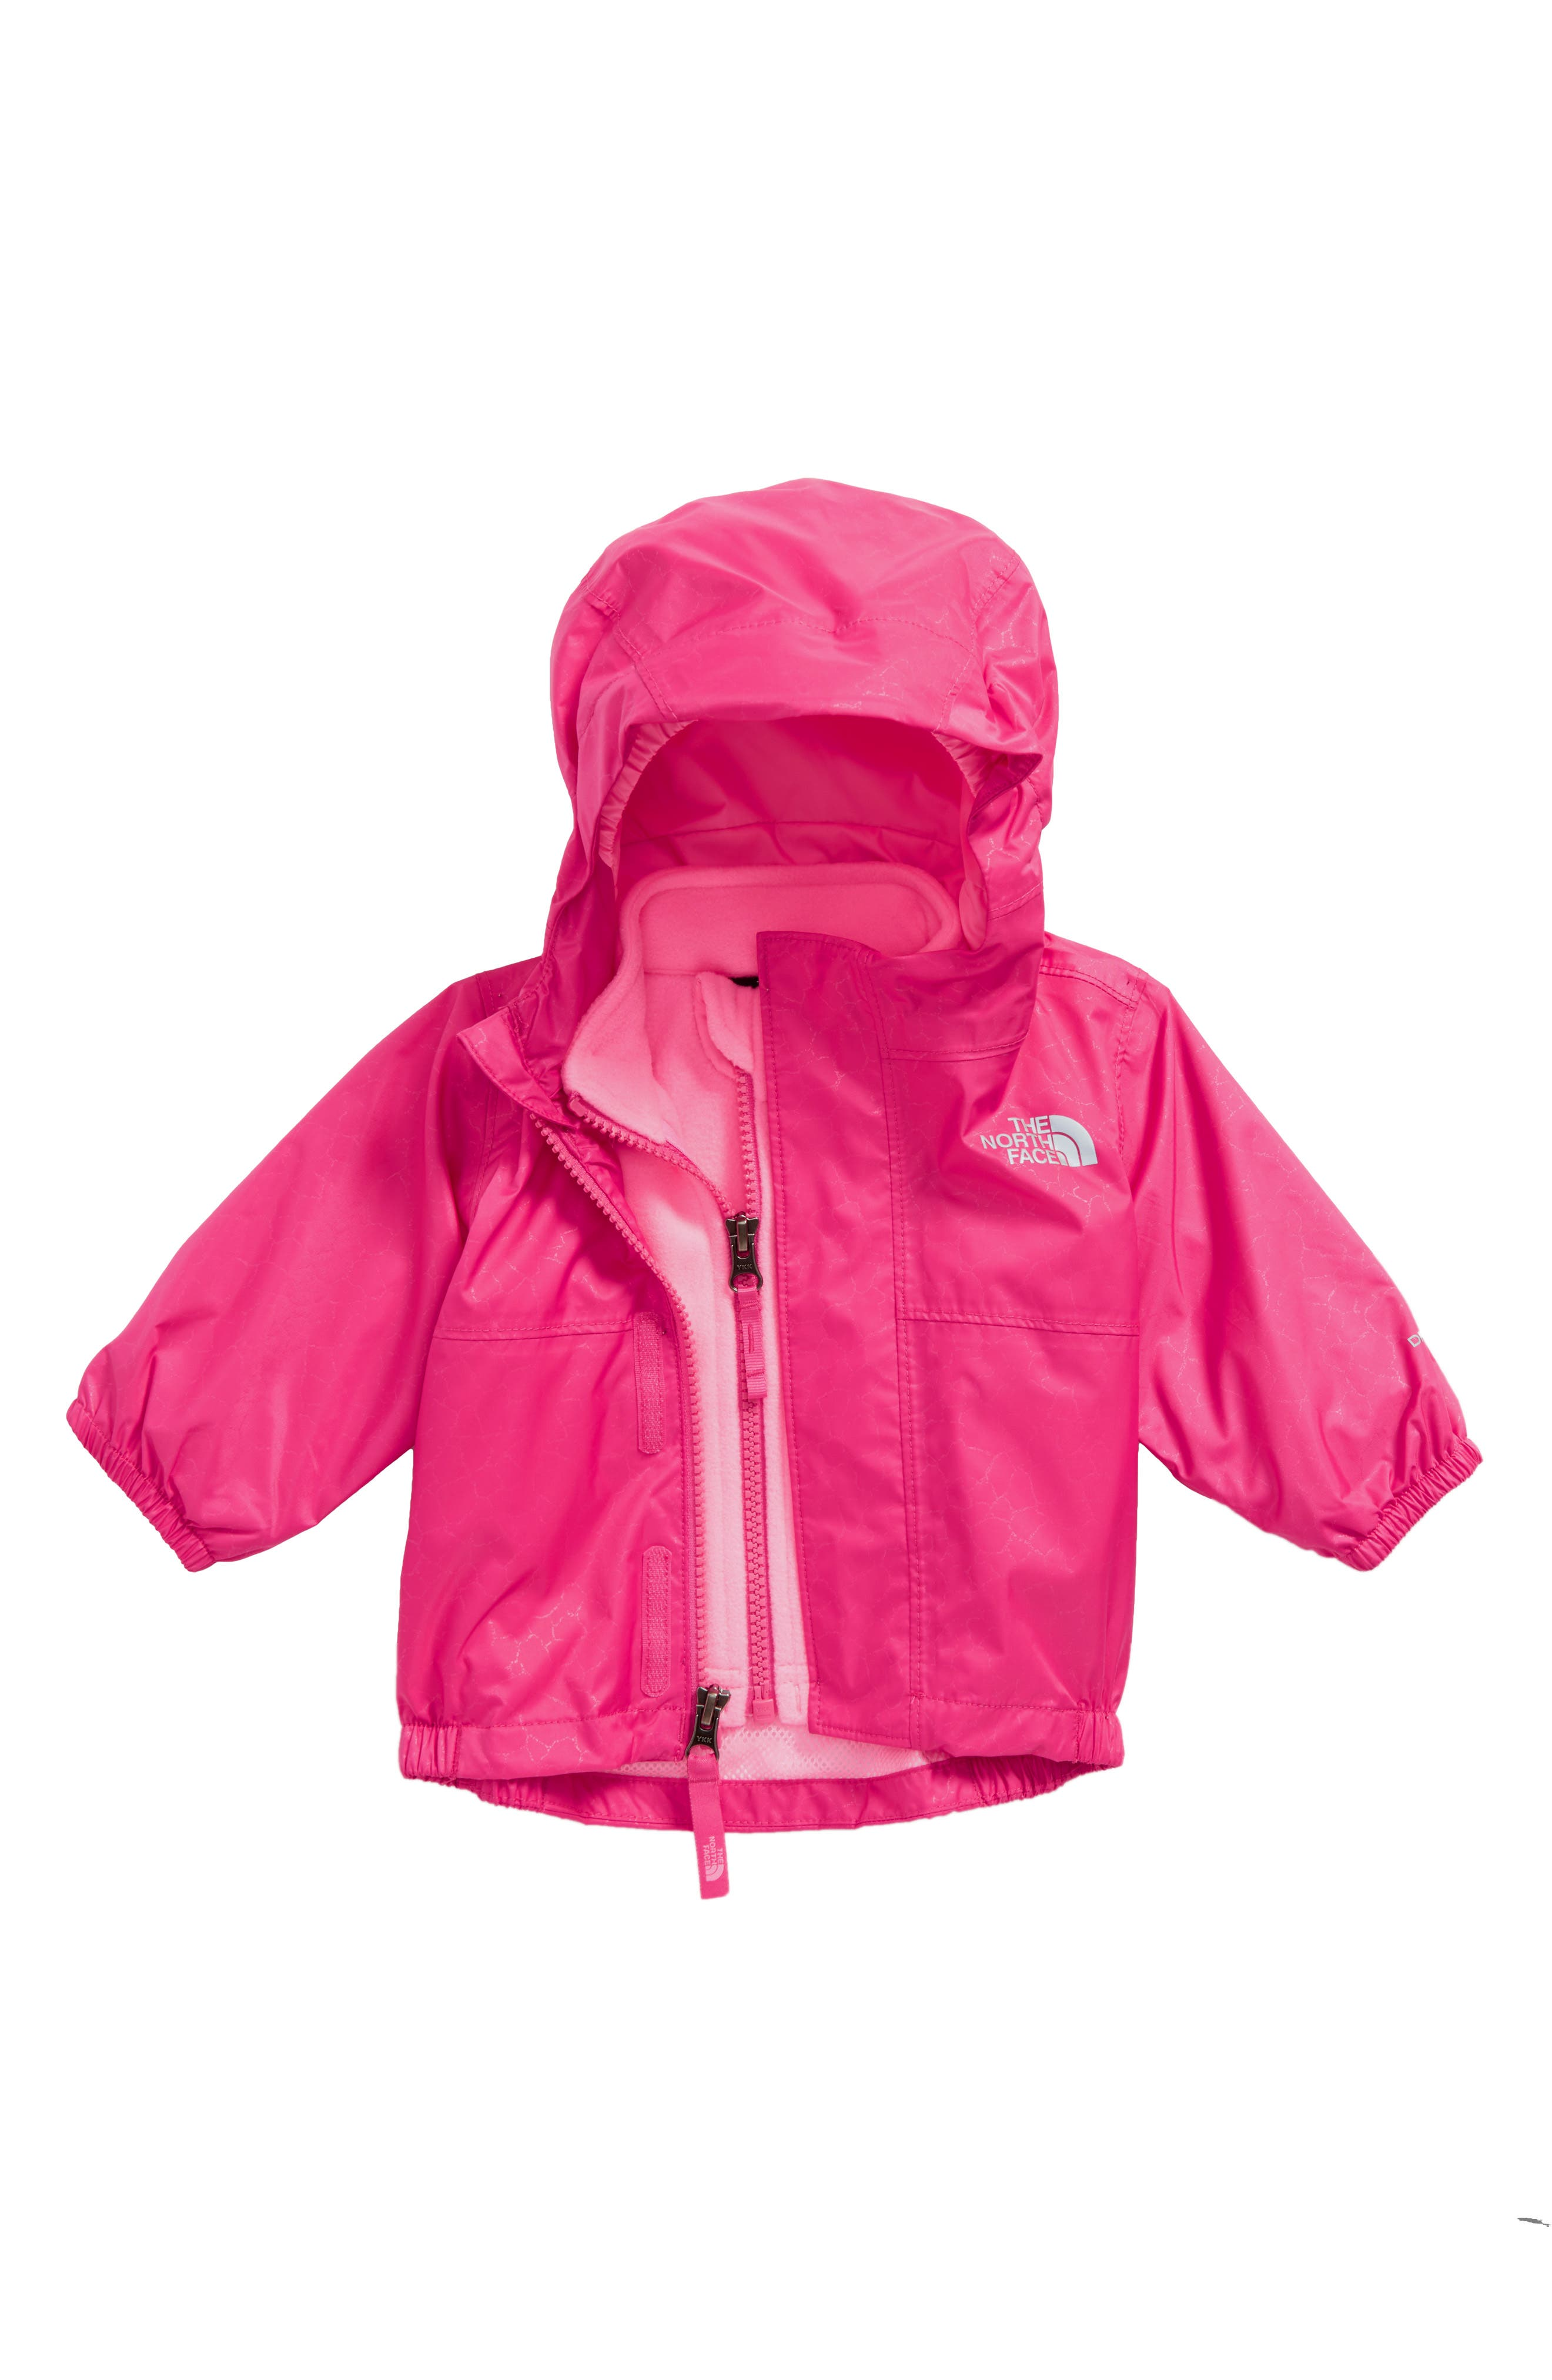 Stormy Rain TriClimate<sup>®</sup> Waterproof & Windproof 3-in-1 Jacket,                             Main thumbnail 1, color,                             651